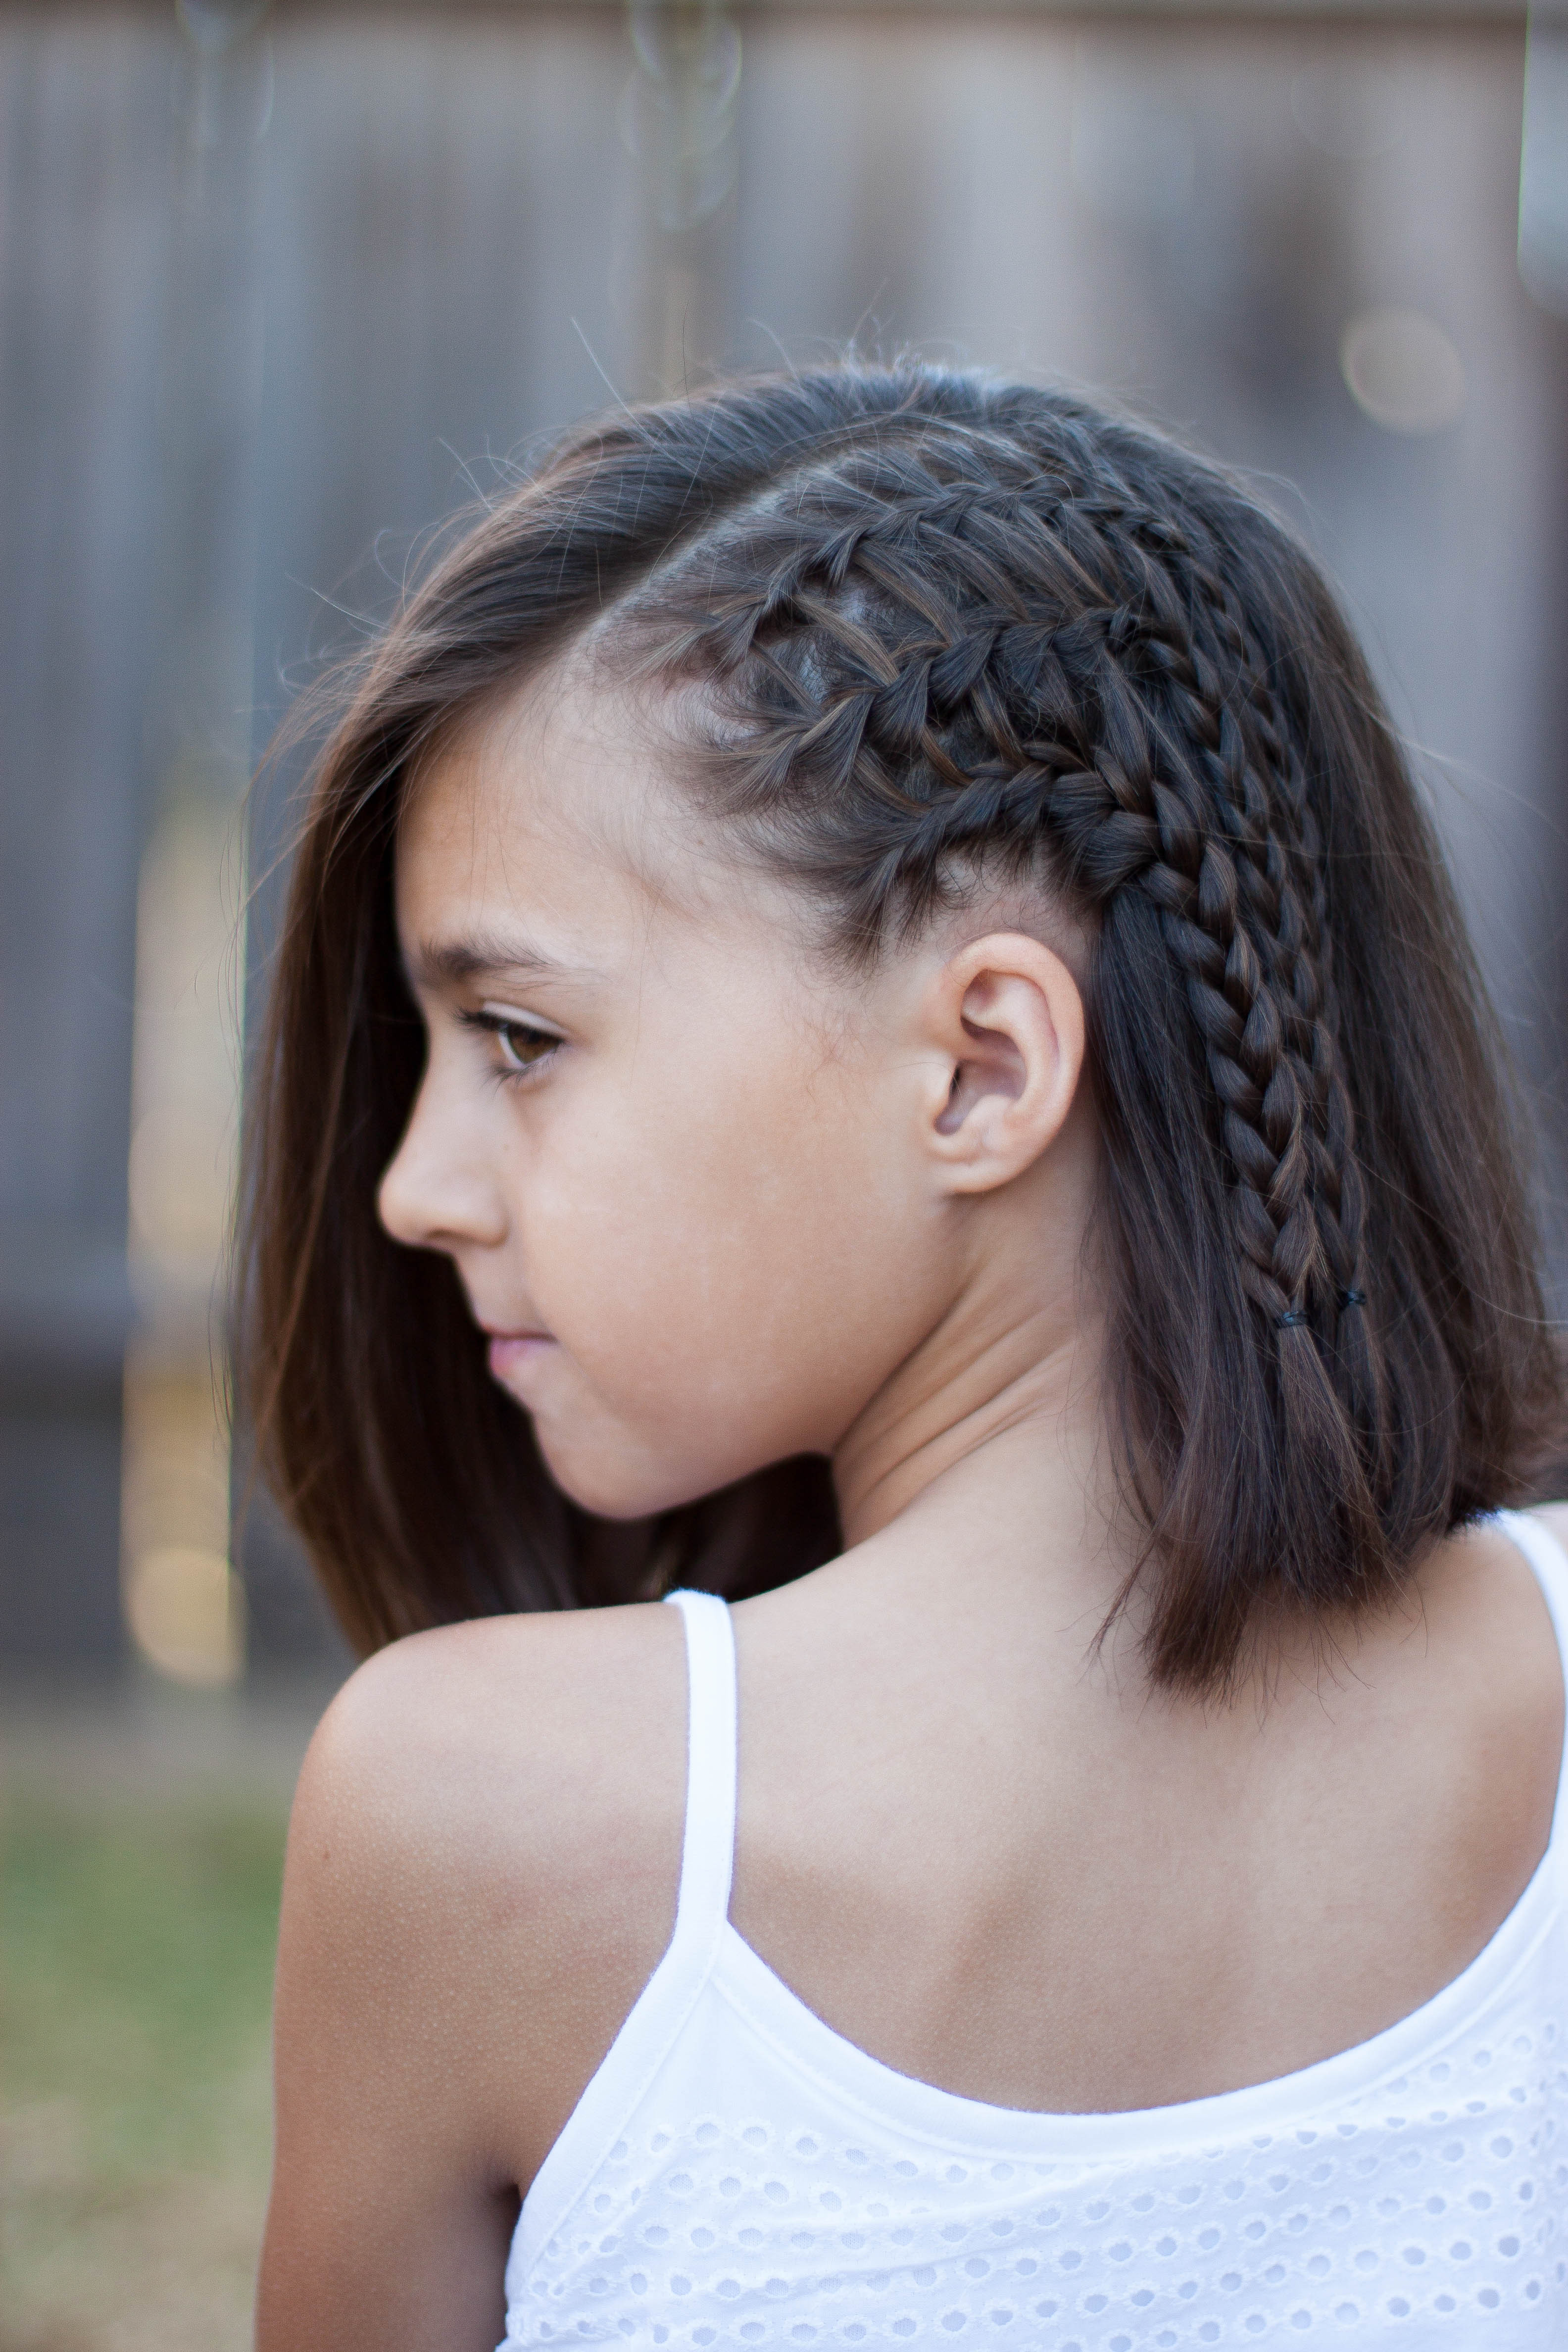 Best ideas about Girl Hairstyle . Save or Pin 5 Braids for Short Hair Now.